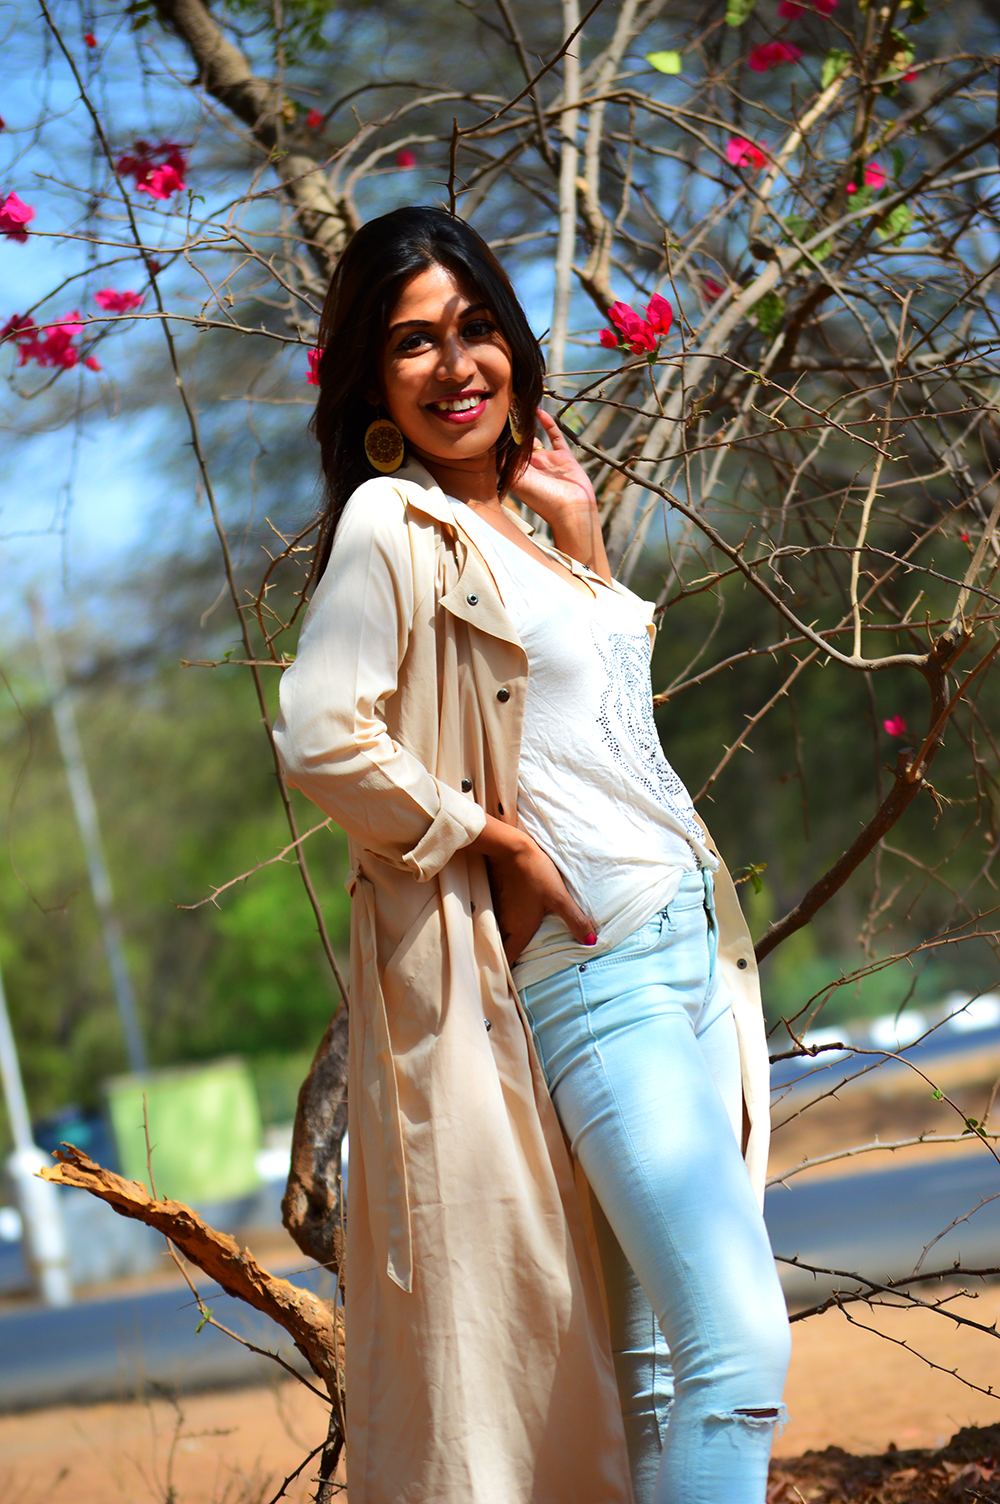 Fashion, Style, Fashion Photography, Street Style, Outfit of the day, Pastel colors, Beige Trench Coat, White tank top, Mint distressed jeans, Summer Fashion, Indian Fashion Blog, Fashion Blogger, Personal Style Blogger